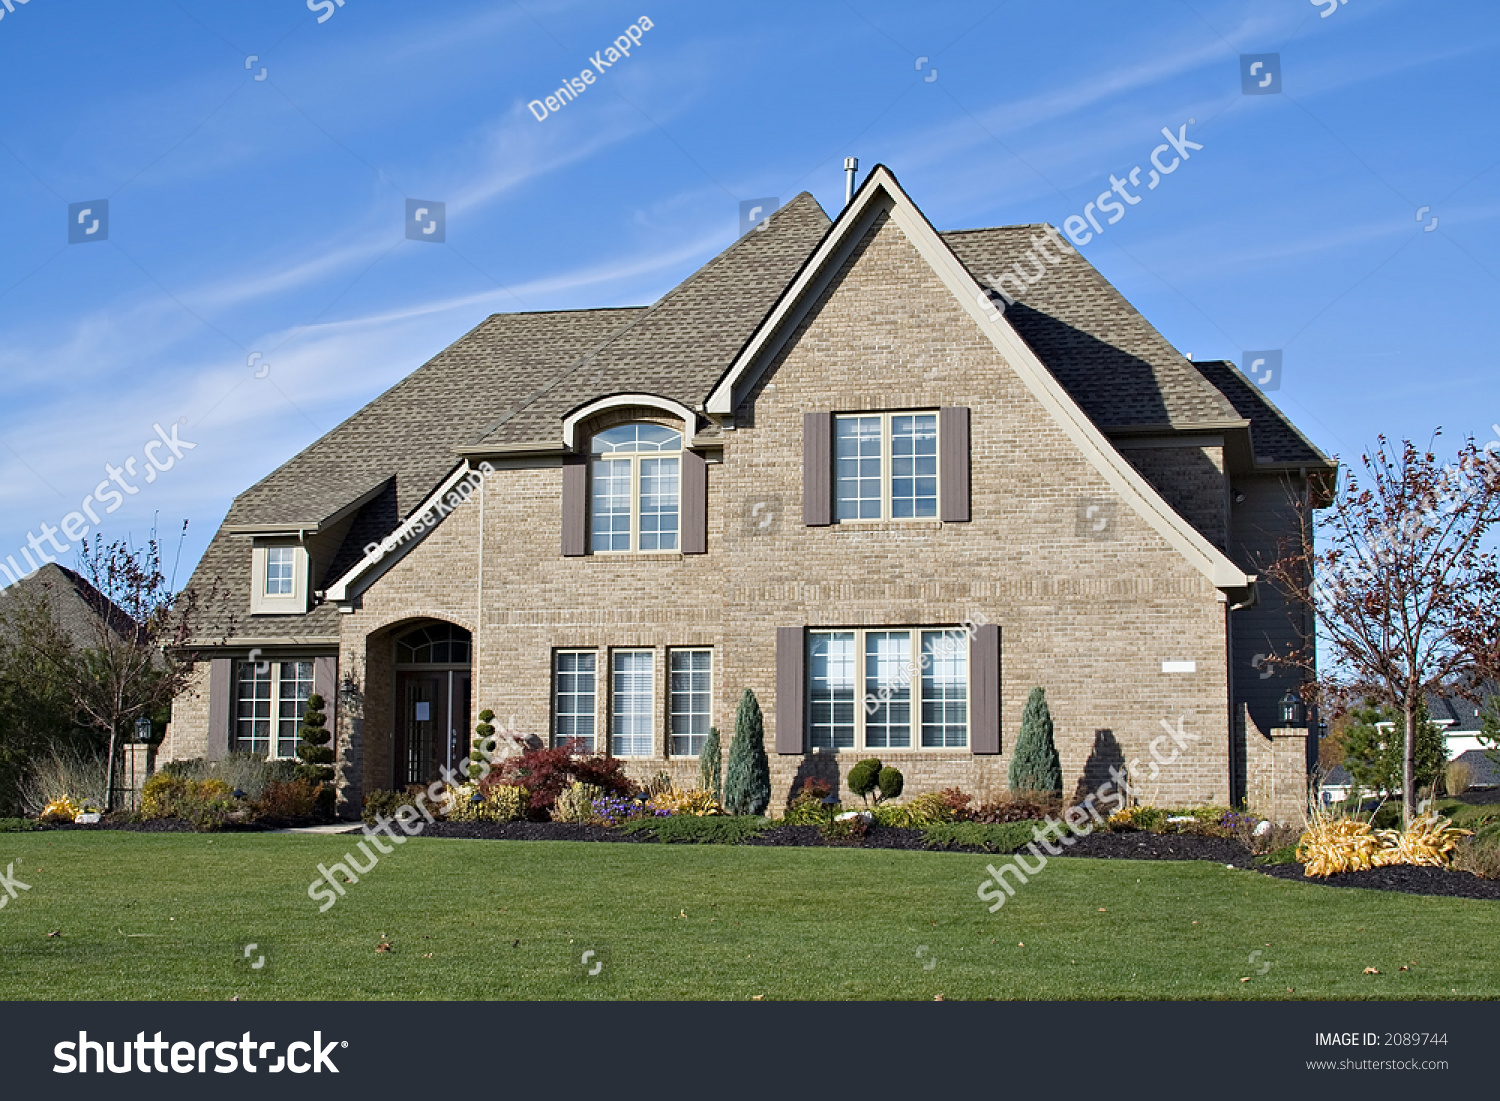 A beautiful home in the suburbs of ohio us stock photo for Beautiful homes in america